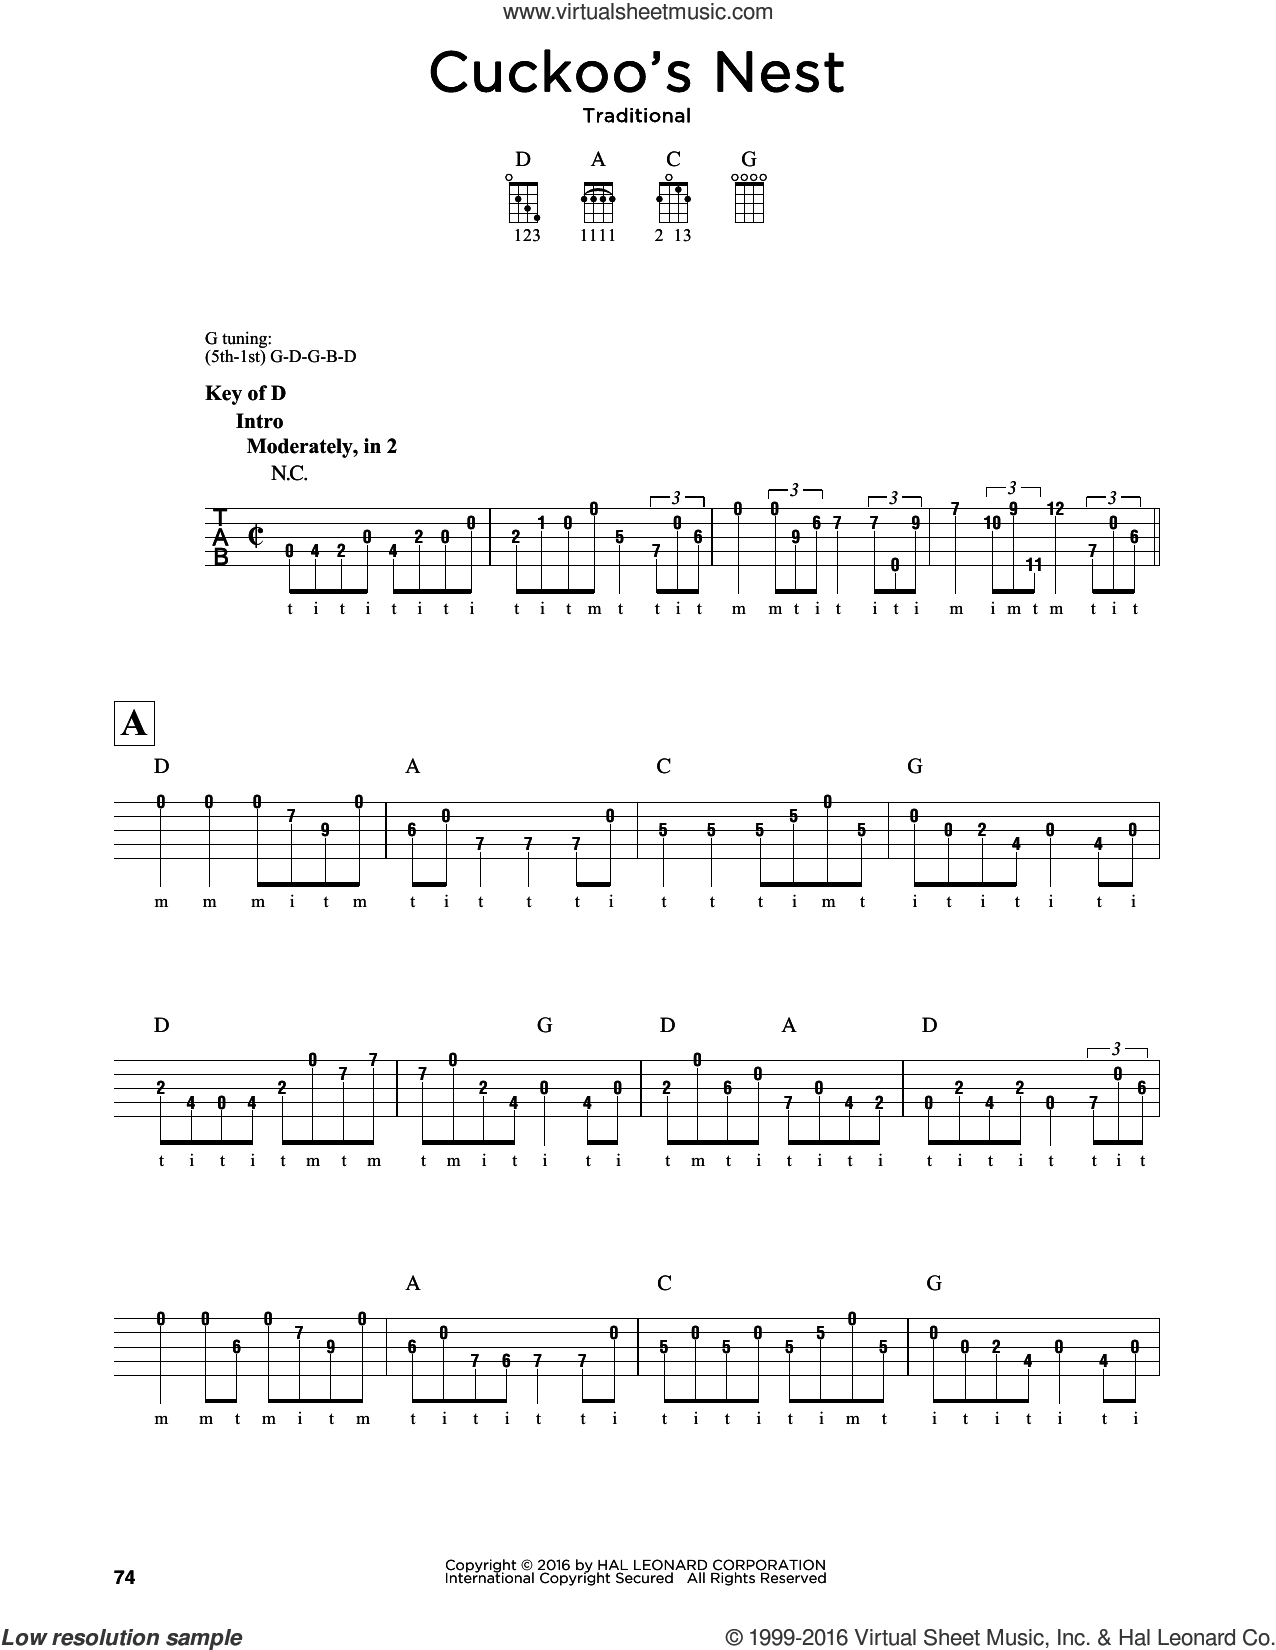 Cuckoo's Nest sheet music for banjo solo, intermediate skill level